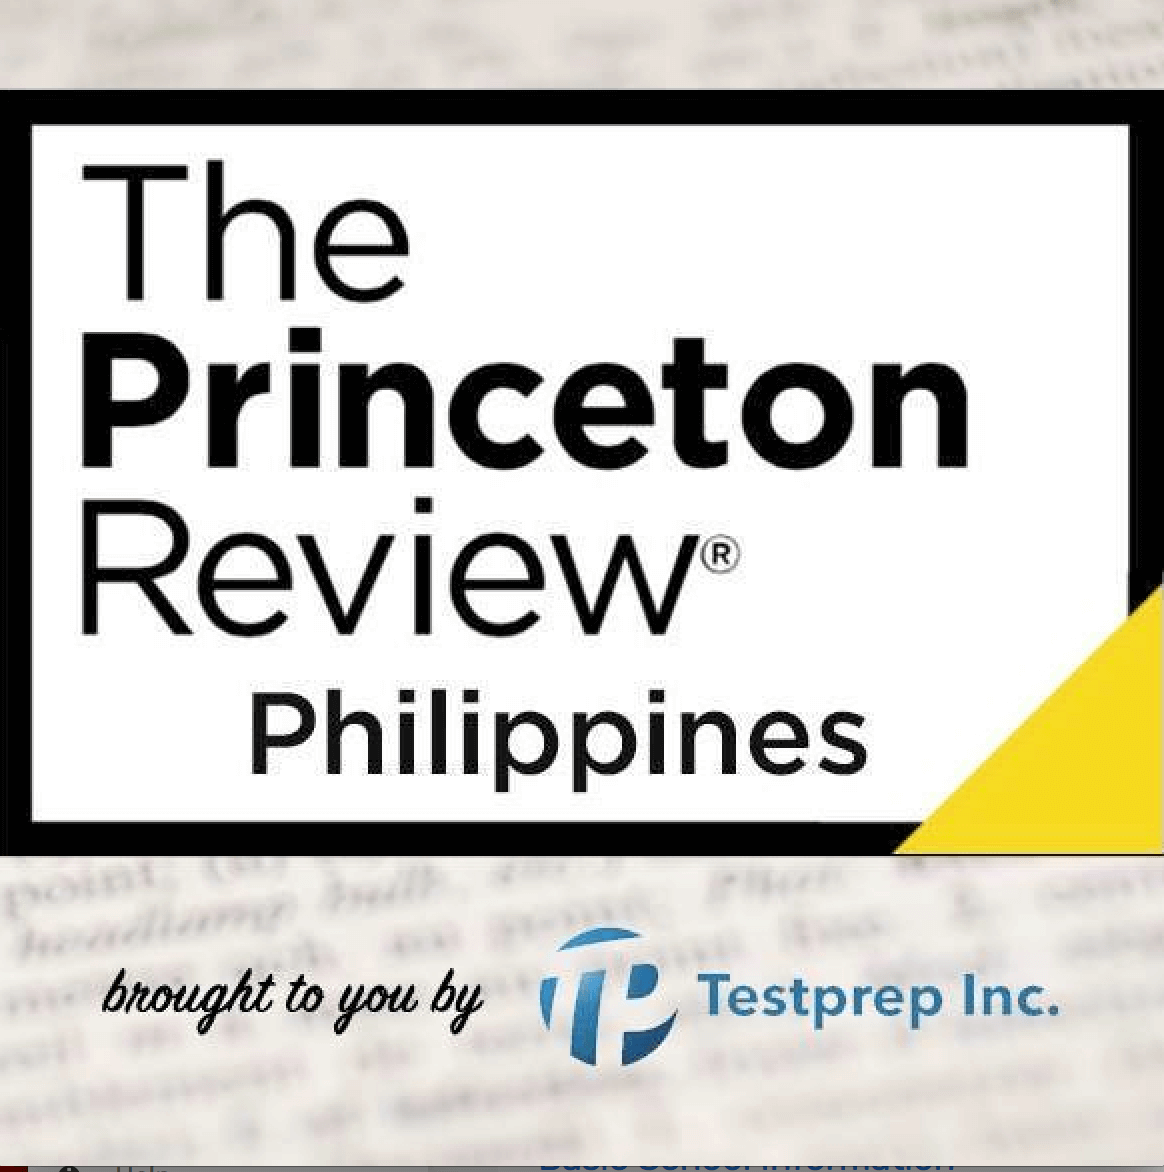 The Princeton Review Philippines Logo